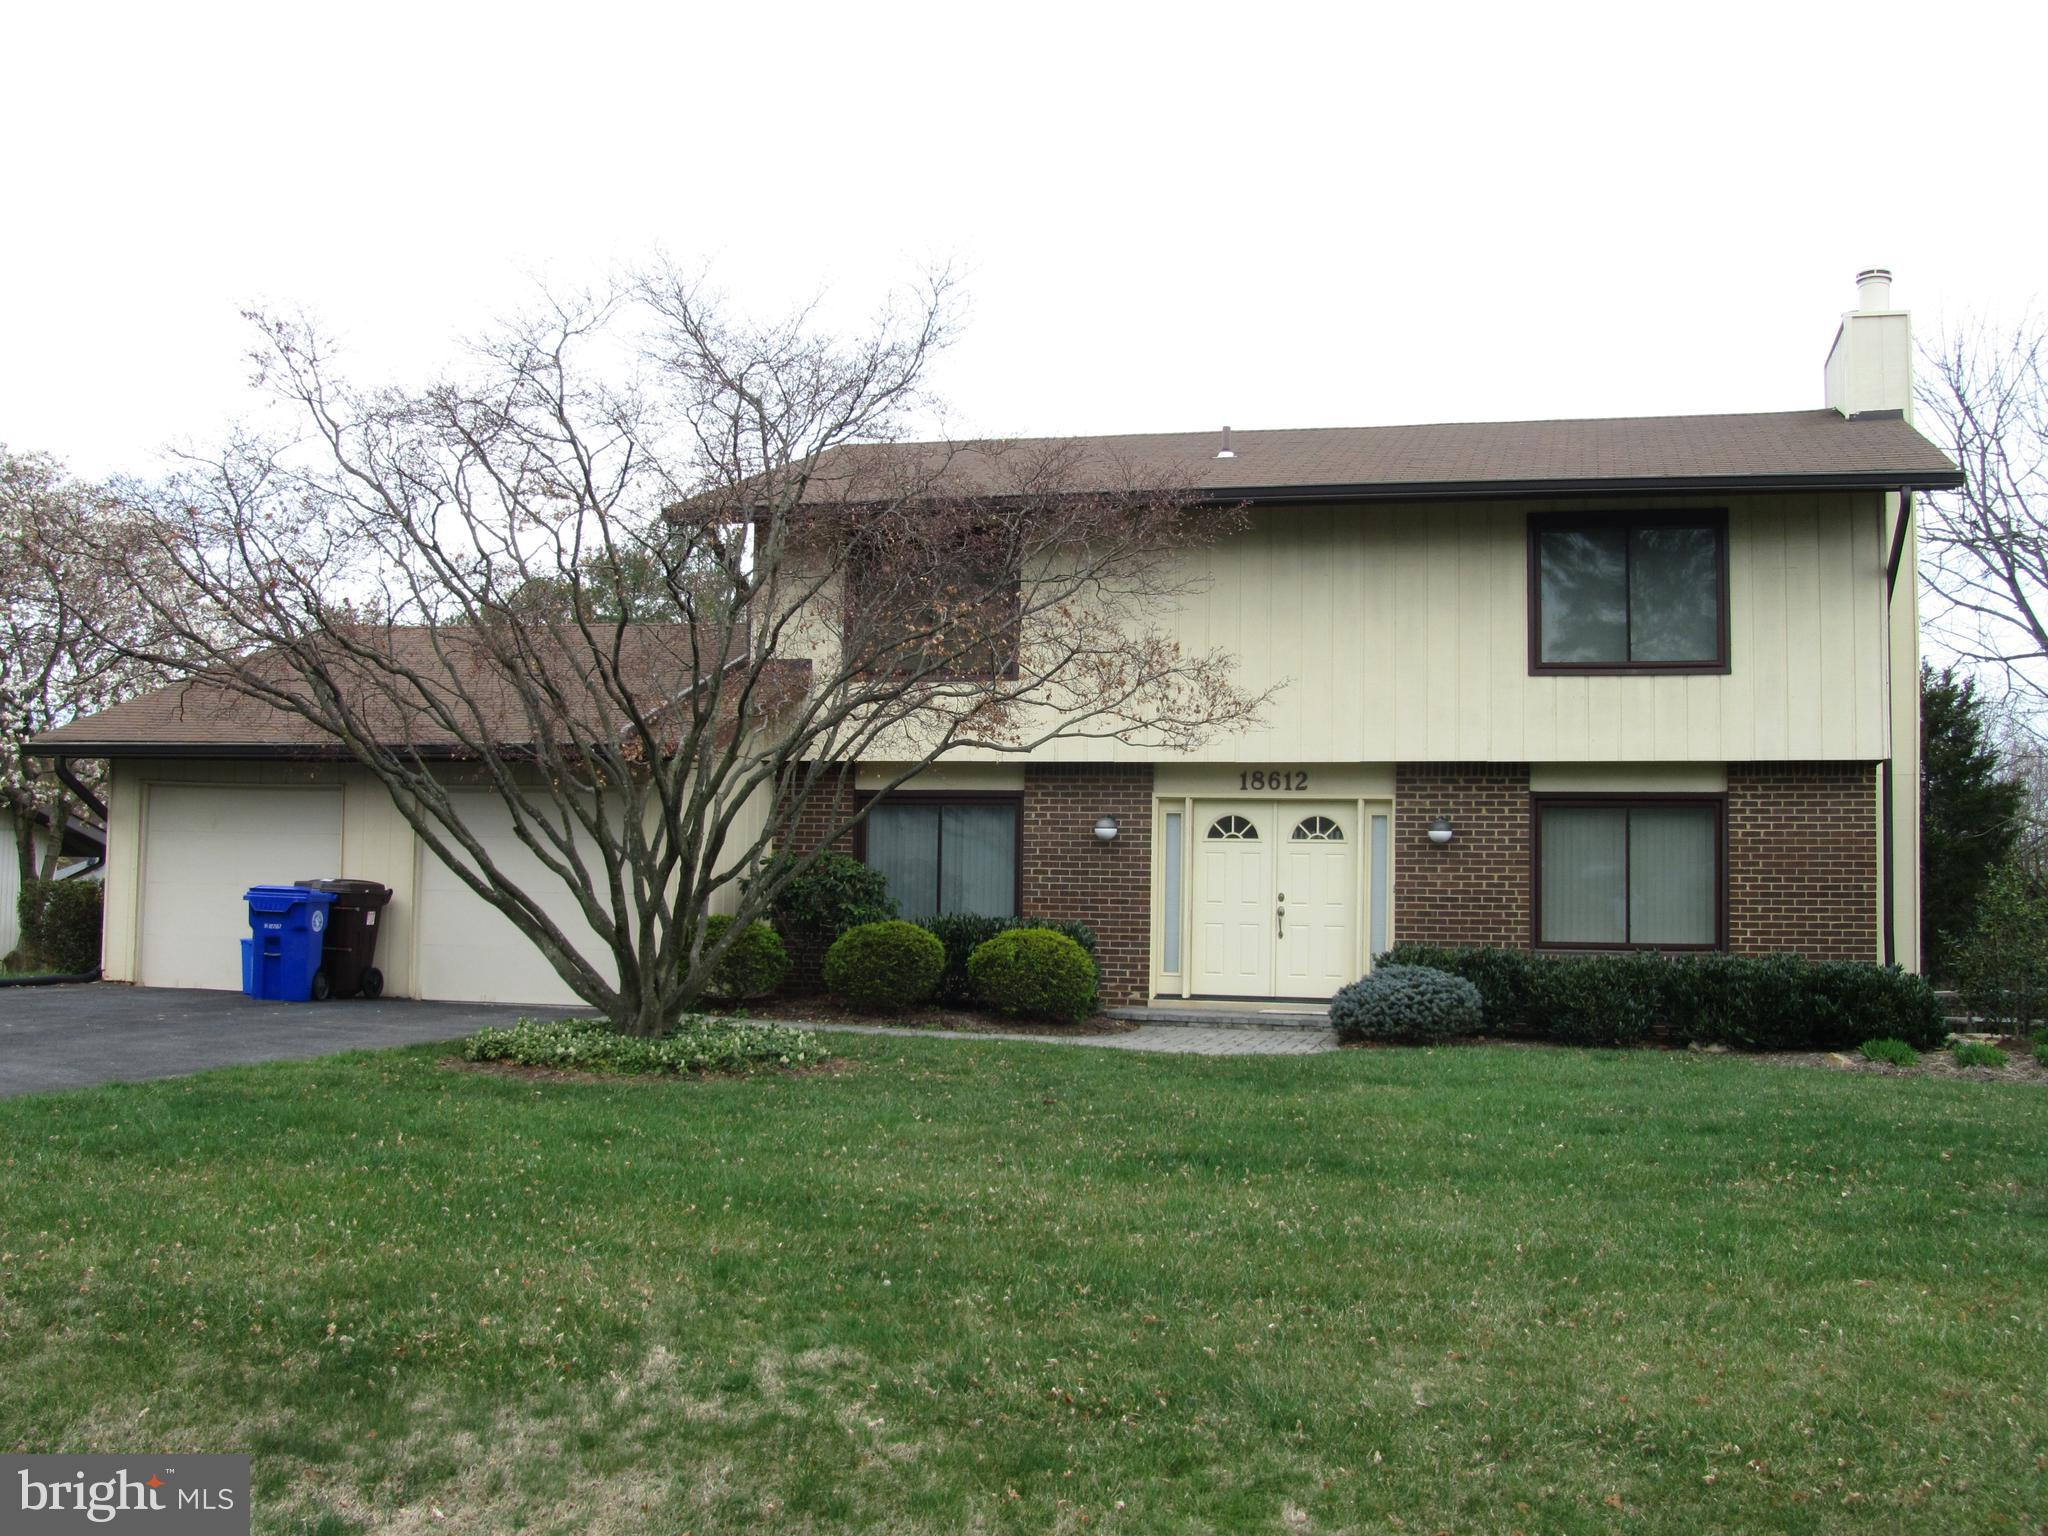 18612 SHADY VIEW LANE, BROOKEVILLE, MD 20833